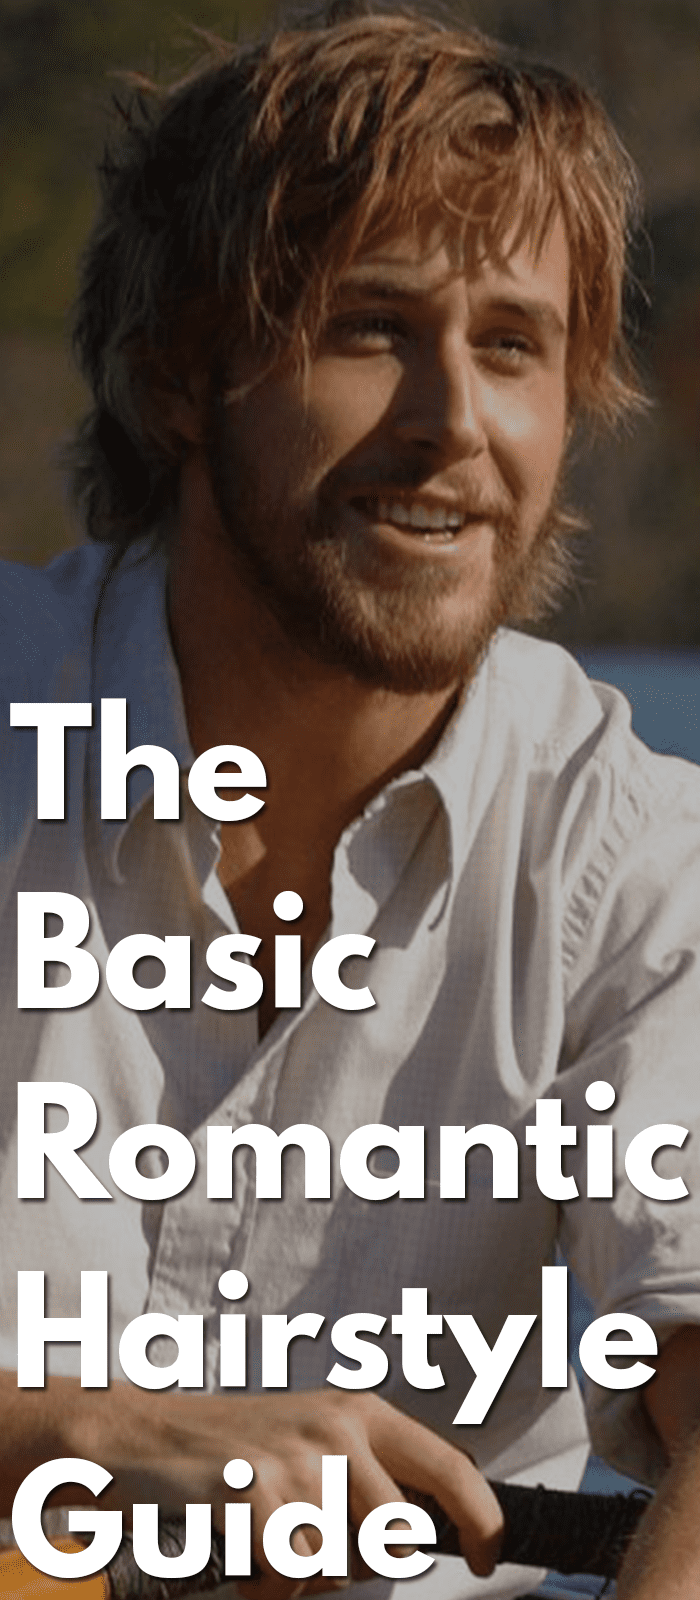 The-Basic-Romantic-Hairstyle-Guide.